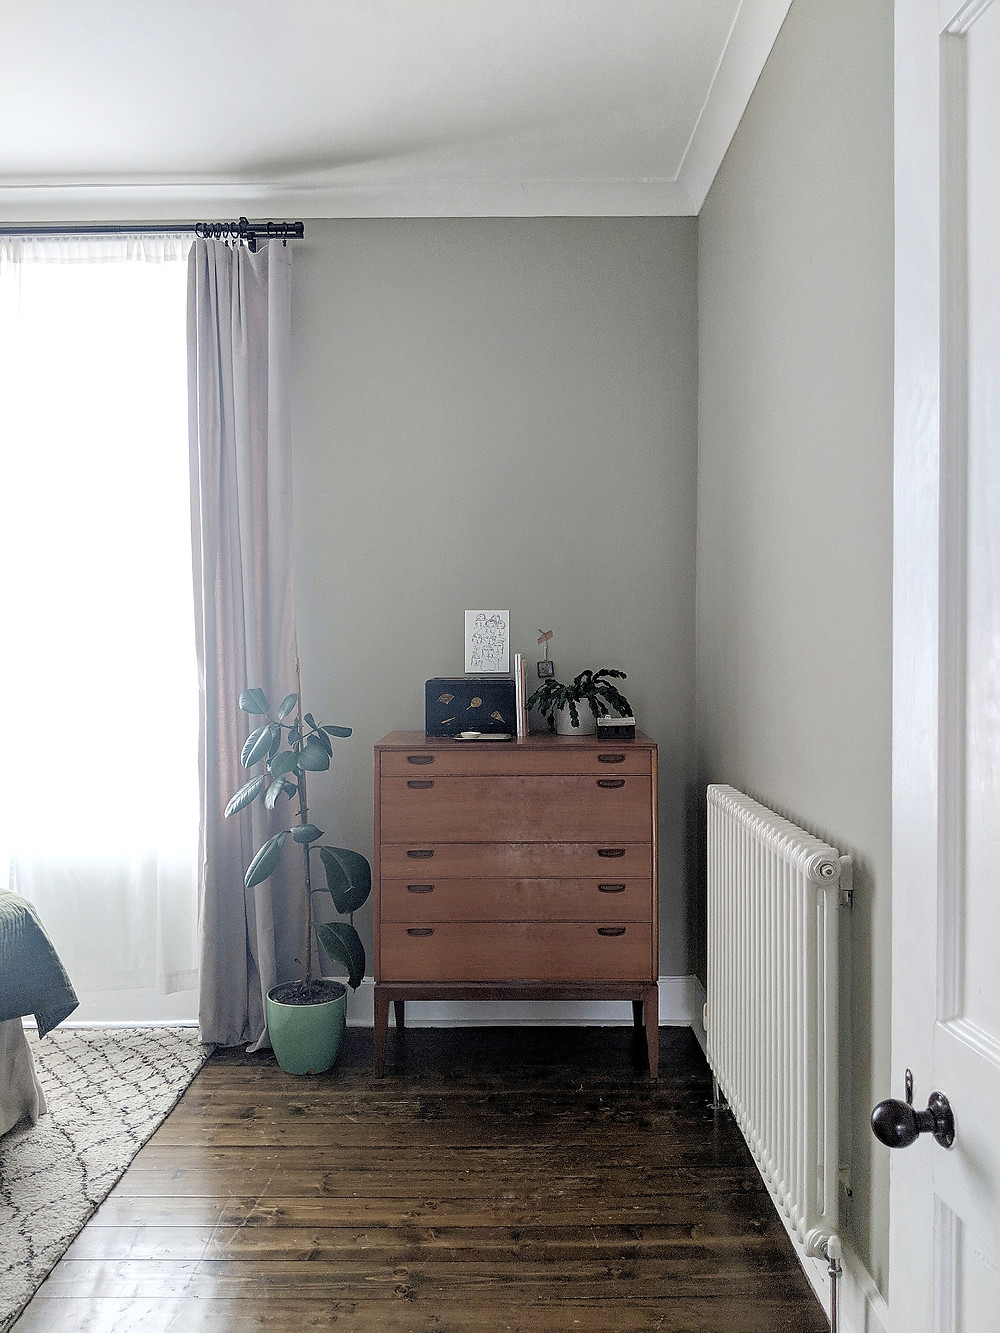 Mid-century chest of drawers with plants. Soft green walls, vintage=-style radiator, dark wooden floors.